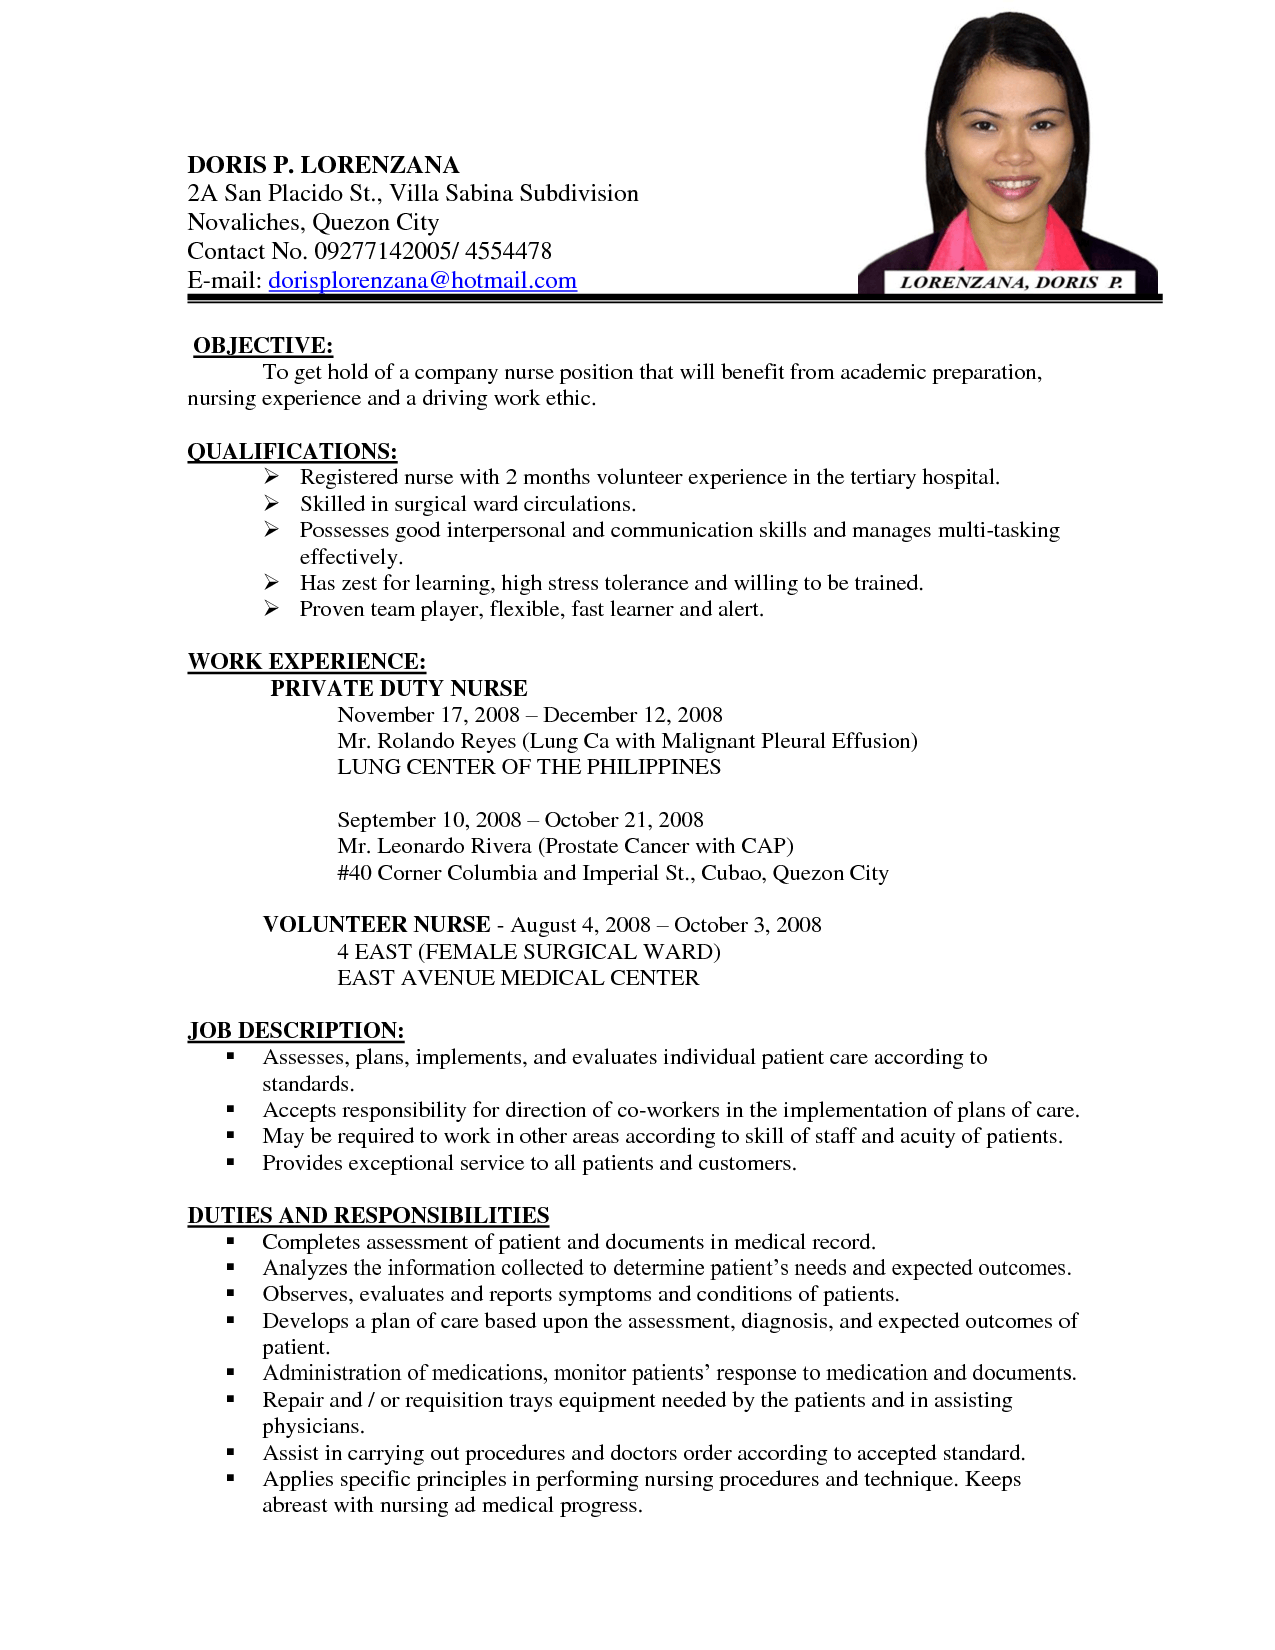 Resume Template For Nursing Image Result For Curriculum Vitae Format For A Nurse  Card